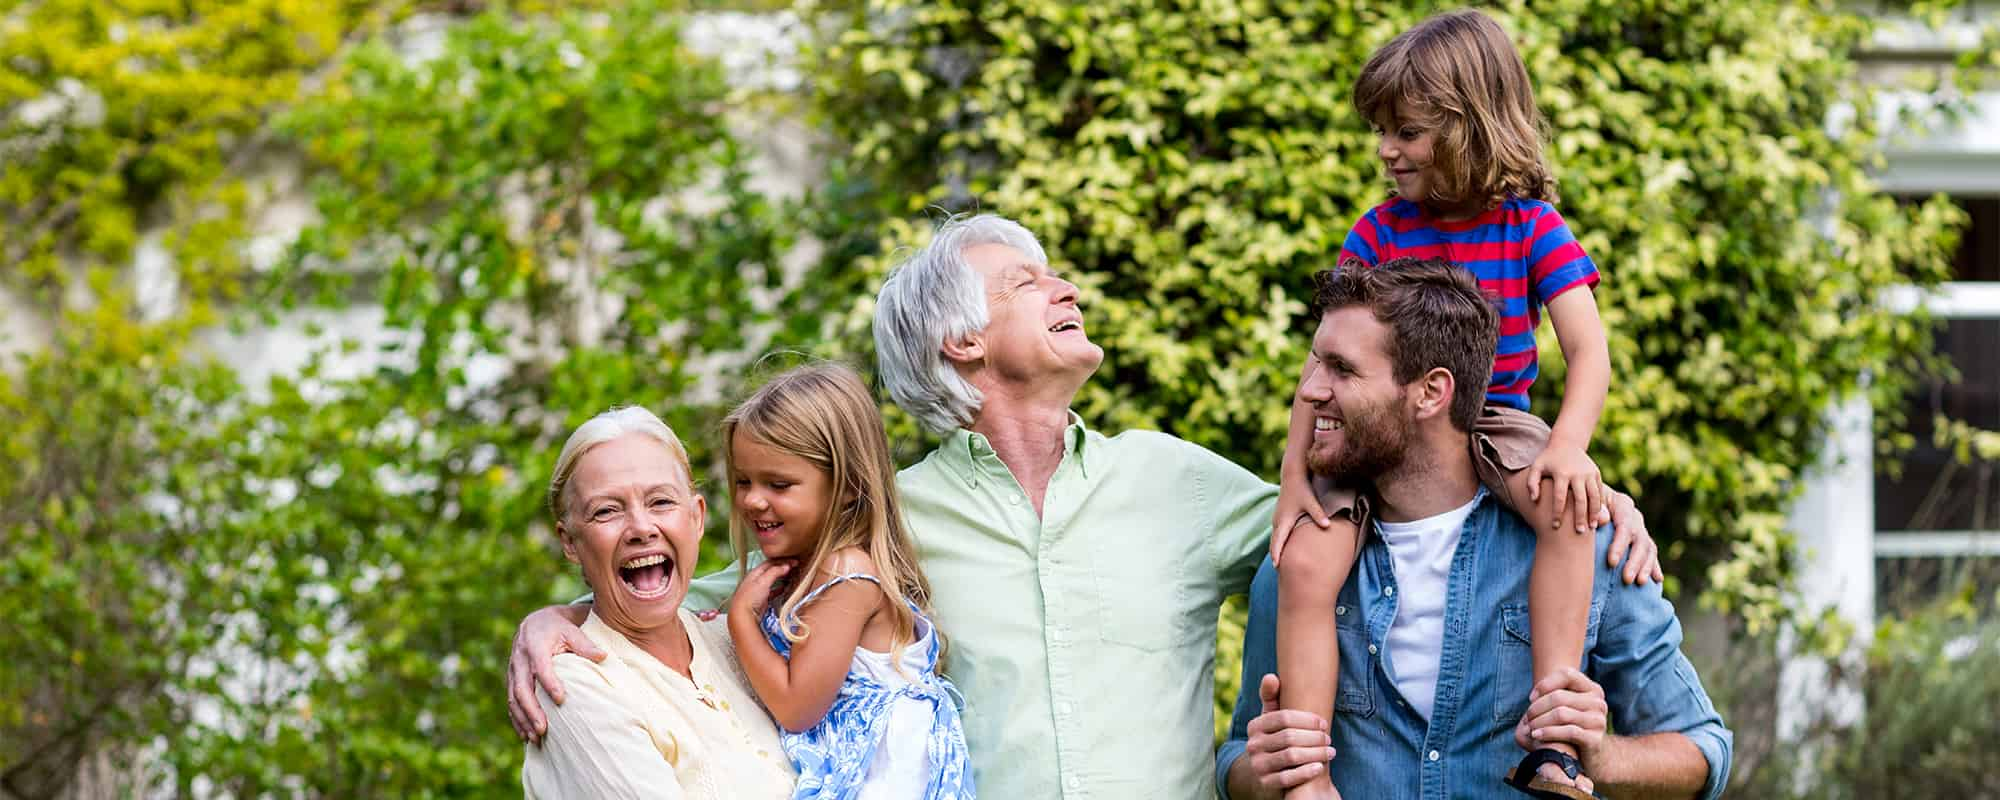 Grandparenting: The Gift The Circle Of Life Brings Back To You